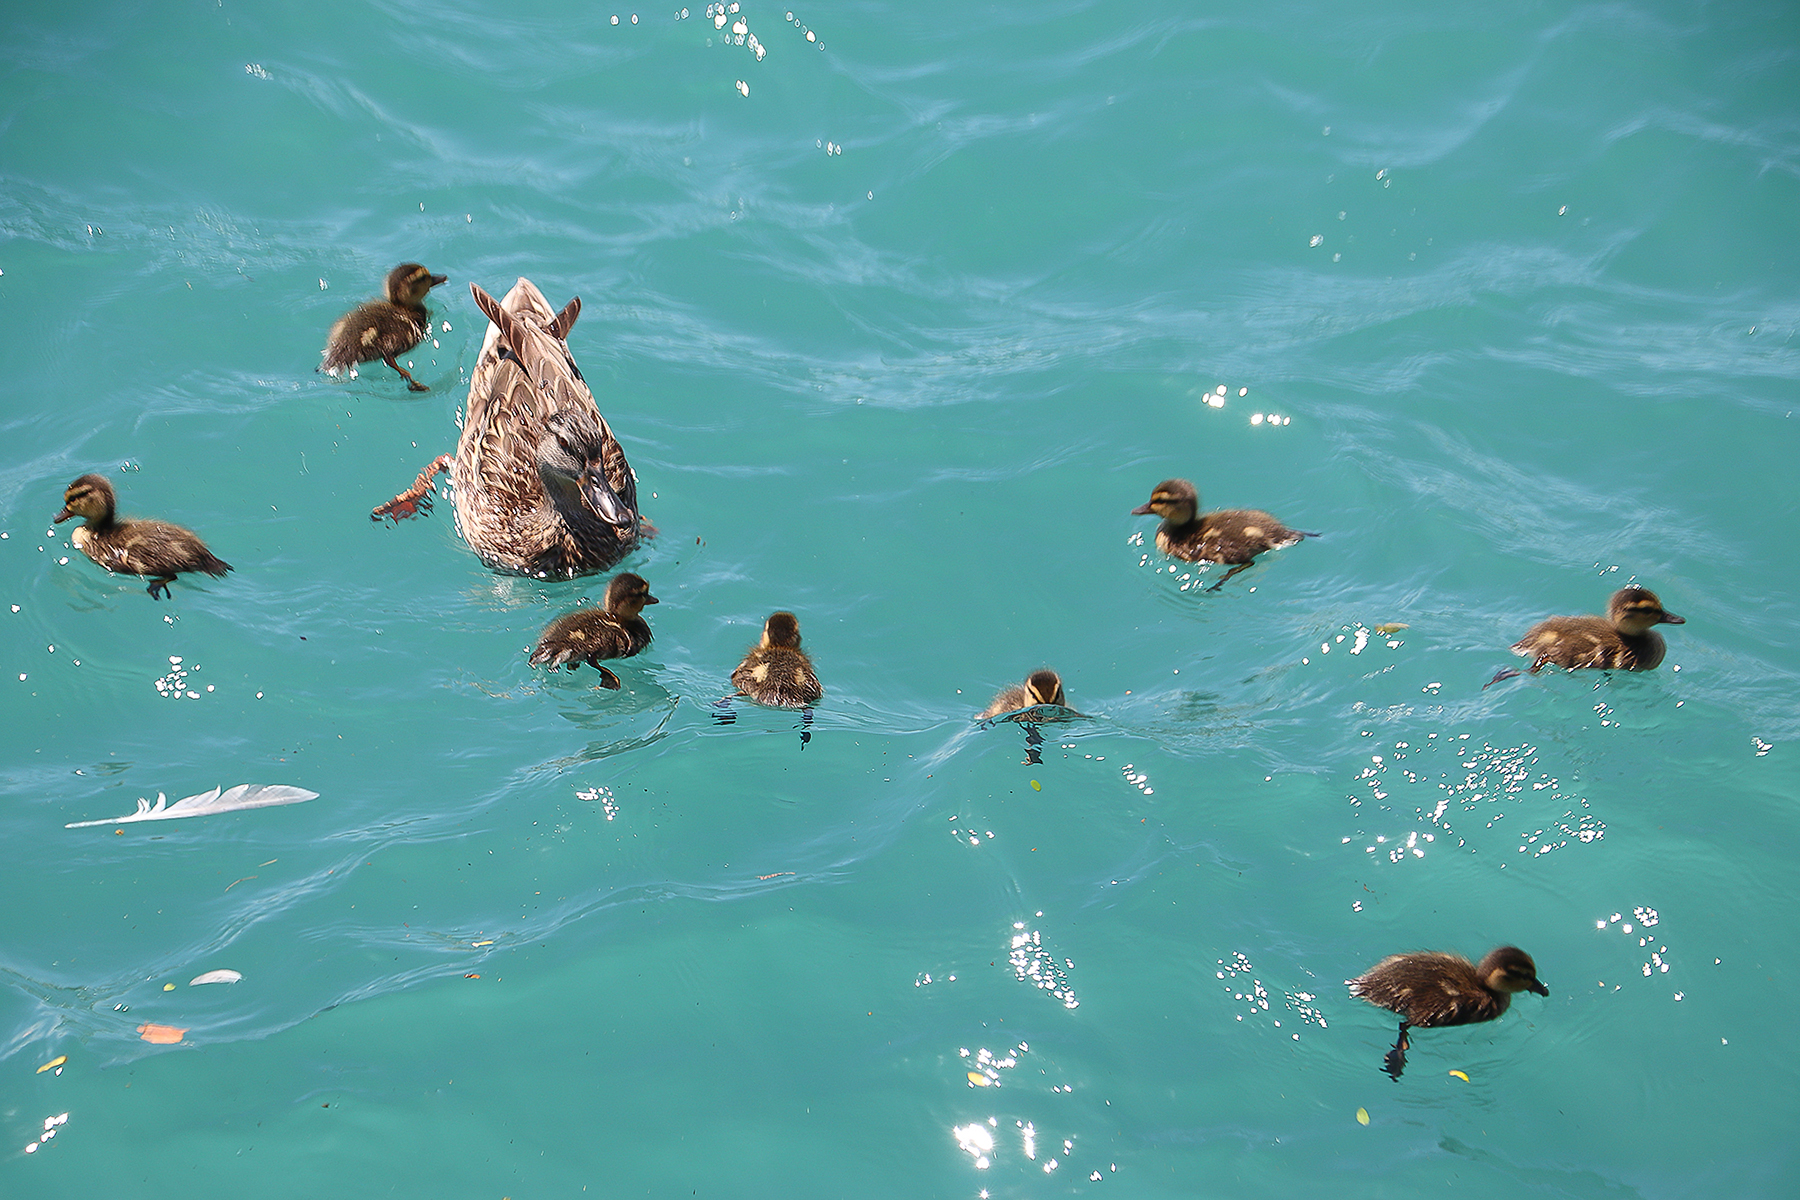 Ducklings by the Lake